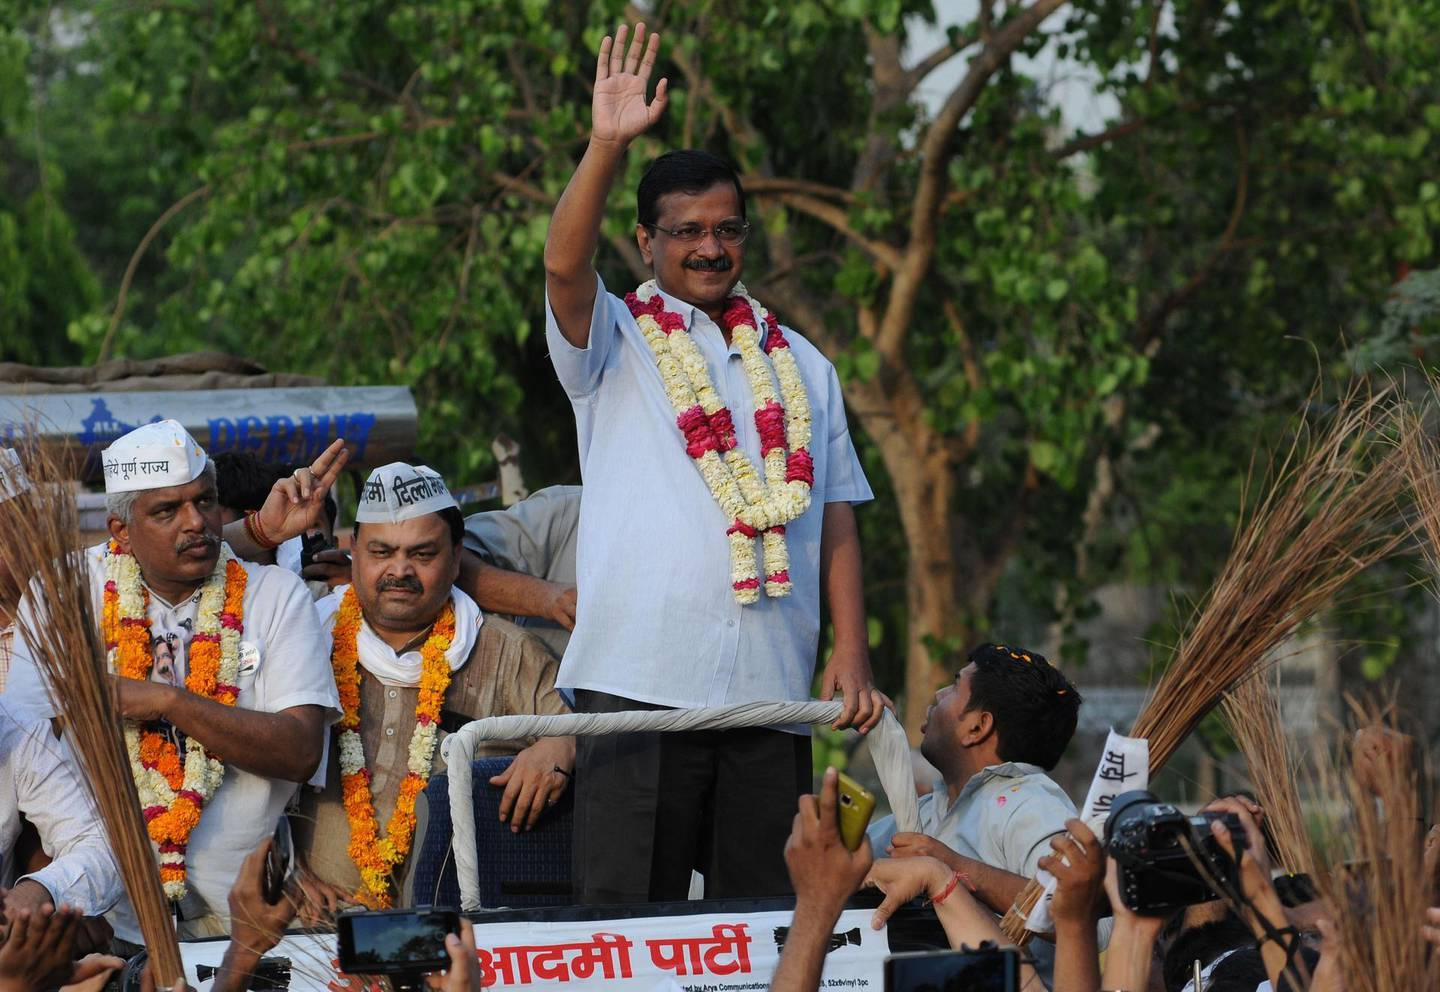 epa07540480 Aam Aadmi Party chief and Delhi Chief minister Arvind Kejriwal (C), waves towards supporters during an election campaign road show in New Delhi, India, 01 May 2019. Voting for the Parliamentary elections in Delhi will be held in a single phase on 12 May 2019. The parliamentary elections, which began on 11 April 2019, are to be conducted in seven phases throughout India and result will be announced on 23 May.  EPA/STR